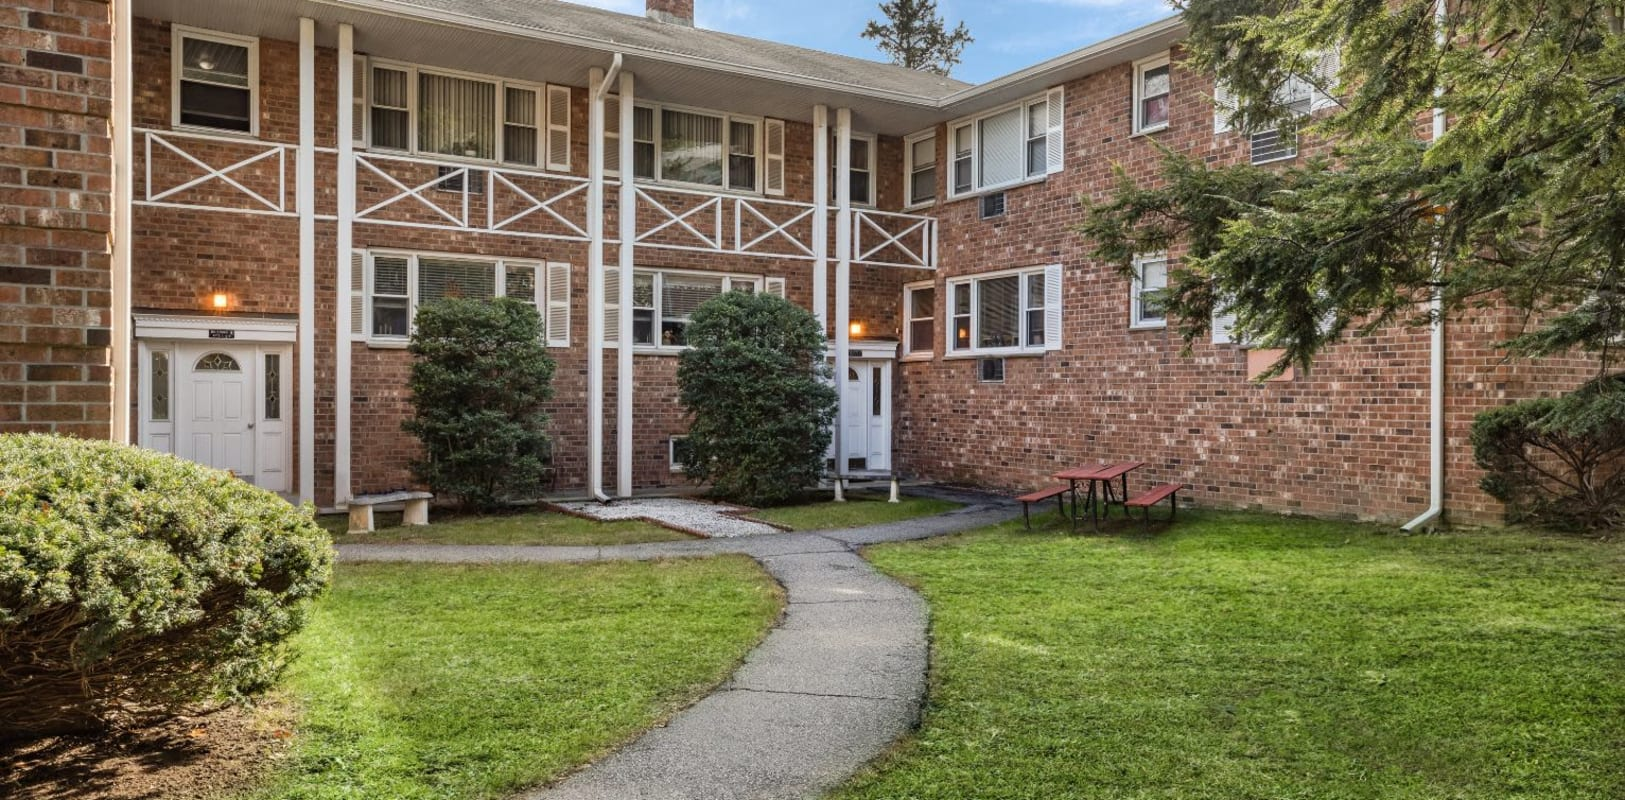 Exterior of Garret Village Apartments in Clifton, New Jersey